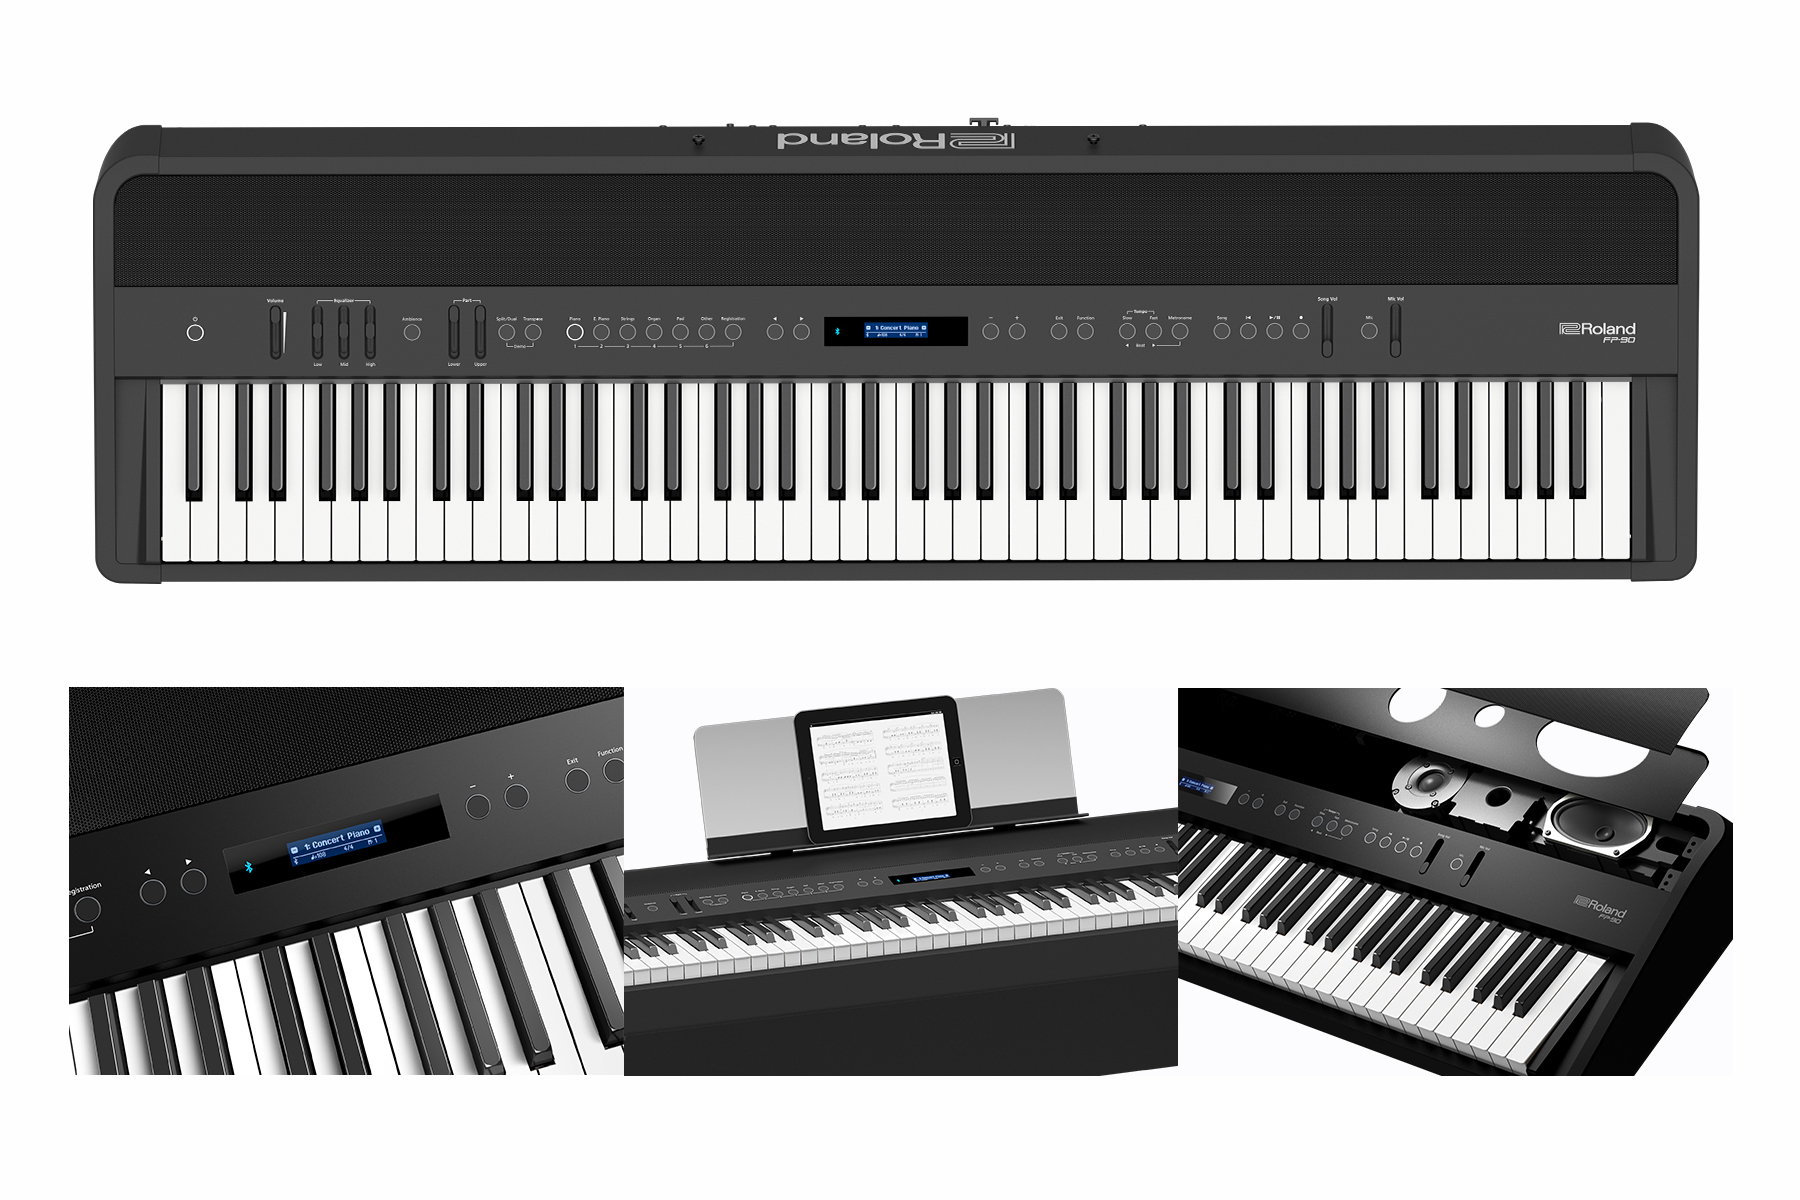 roland fp 90 digital piano receives top prize in 2017 red dot product design awards. Black Bedroom Furniture Sets. Home Design Ideas